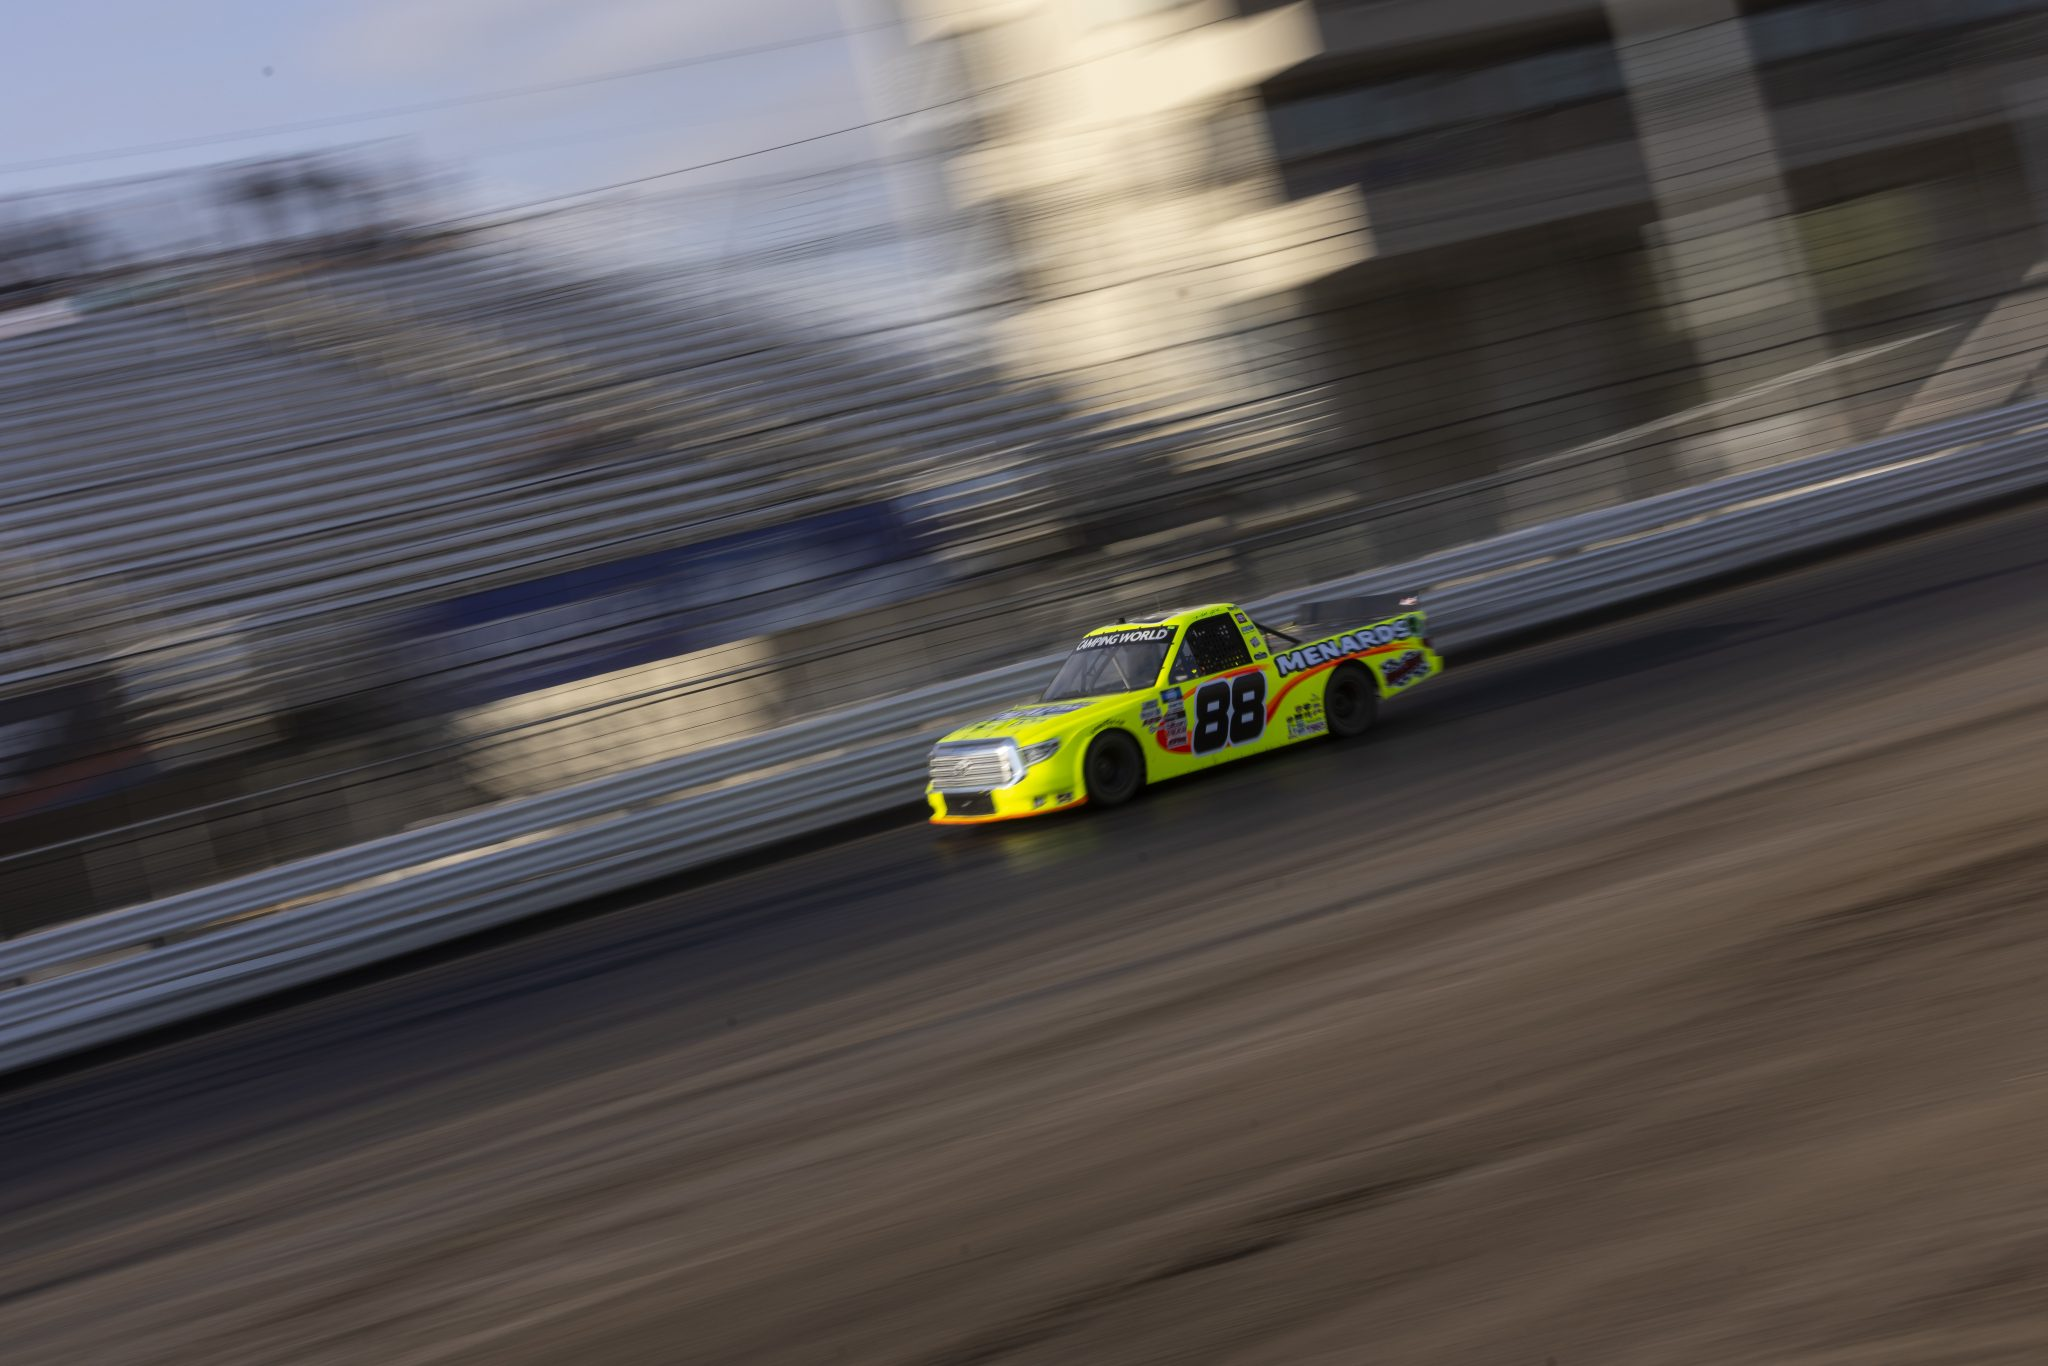 KNOXVILLE, IOWA - JULY 08: Matt Crafton, driver of the #88 Ideal Door/Menards Toyota, drives during practice for the NASCAR Camping World Truck Series Corn Belt 150 presented by Premier Chevy Dealers at Knoxville Raceway on July 08, 2021 in Knoxville, Iowa. (Photo by James Gilbert/Getty Images) | Getty Images